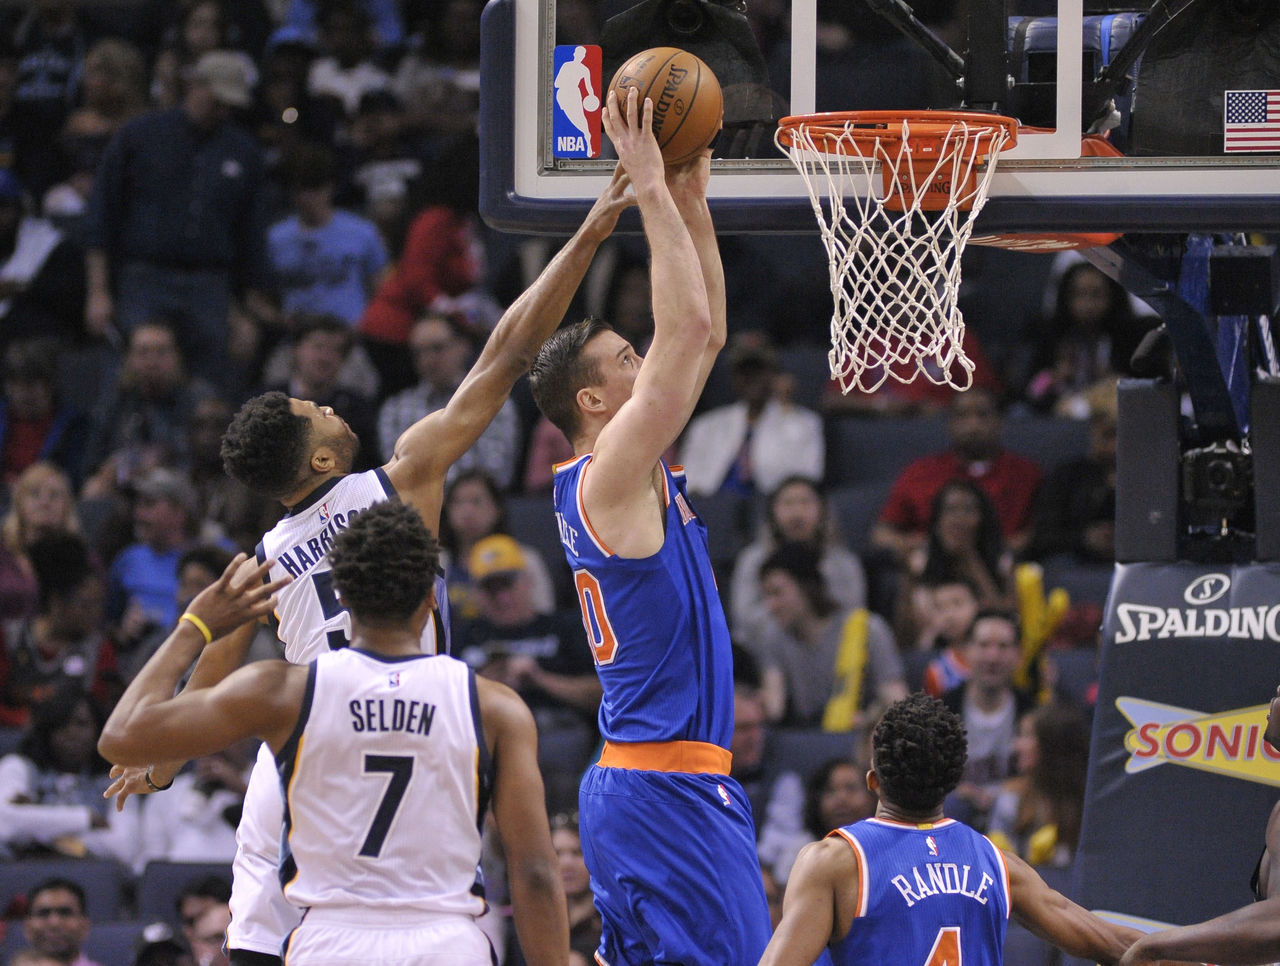 Cropped_2017-04-08t012256z_846196483_nocid_rtrmadp_3_nba-new-york-knicks-at-memphis-grizzlies